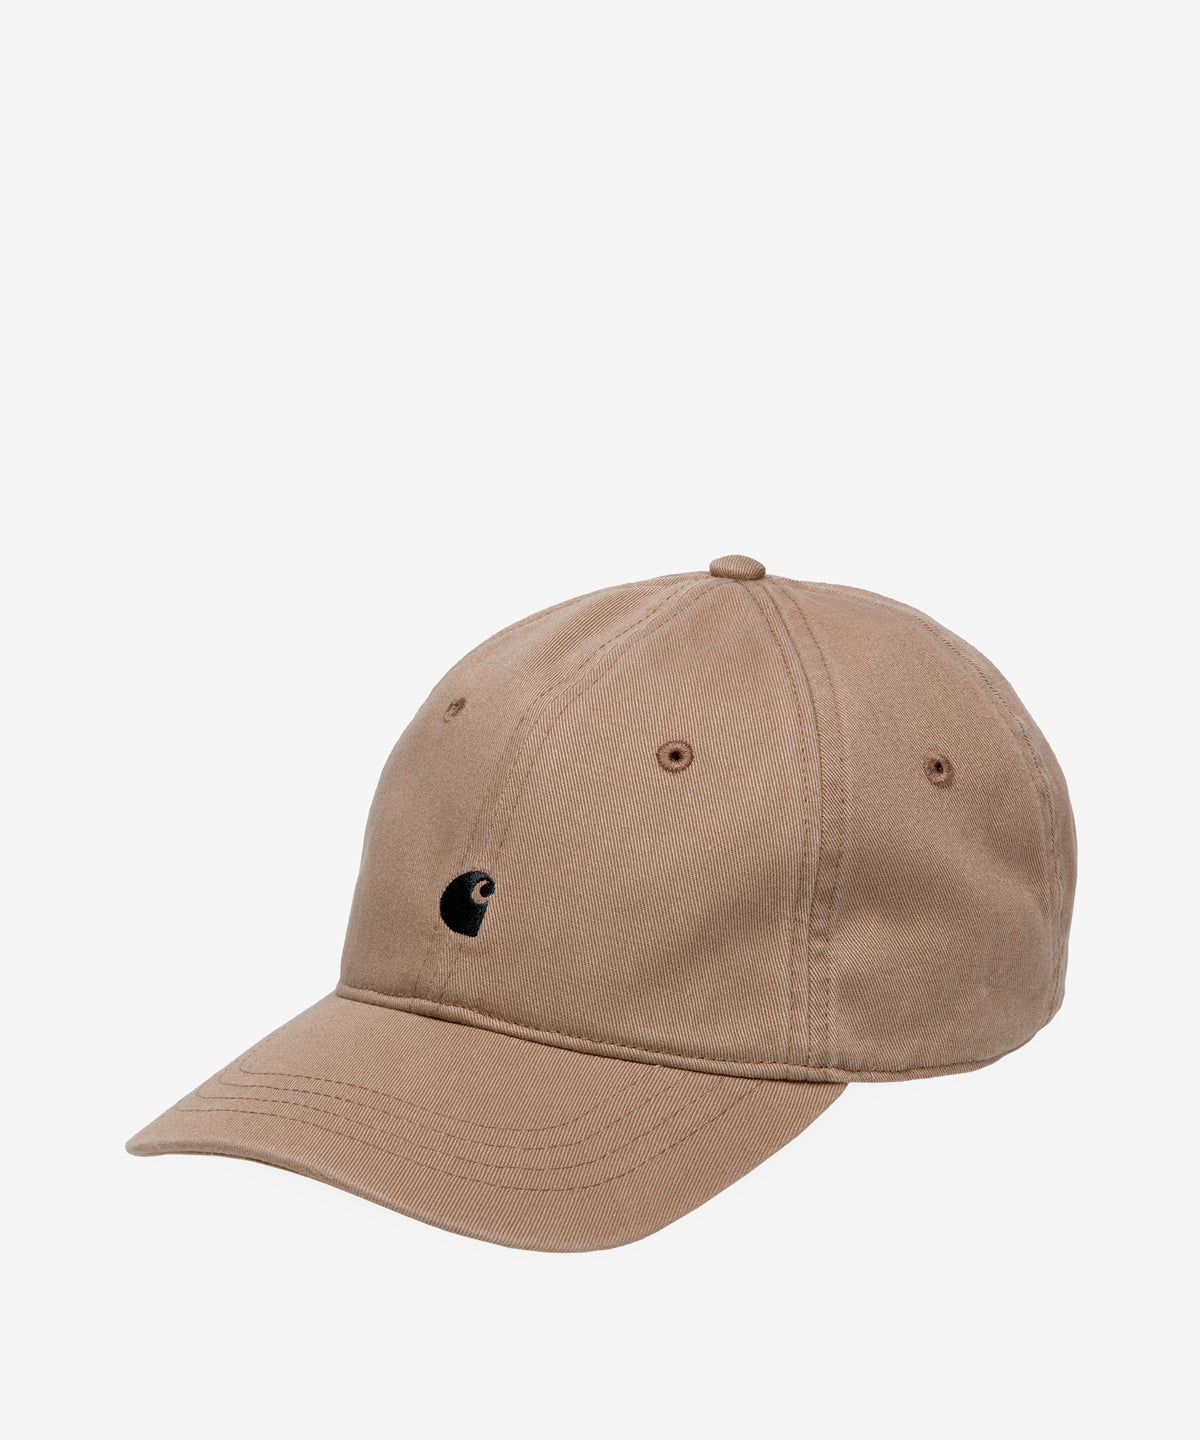 Image of CARHARTT WIP_MADISON LOGO CAP